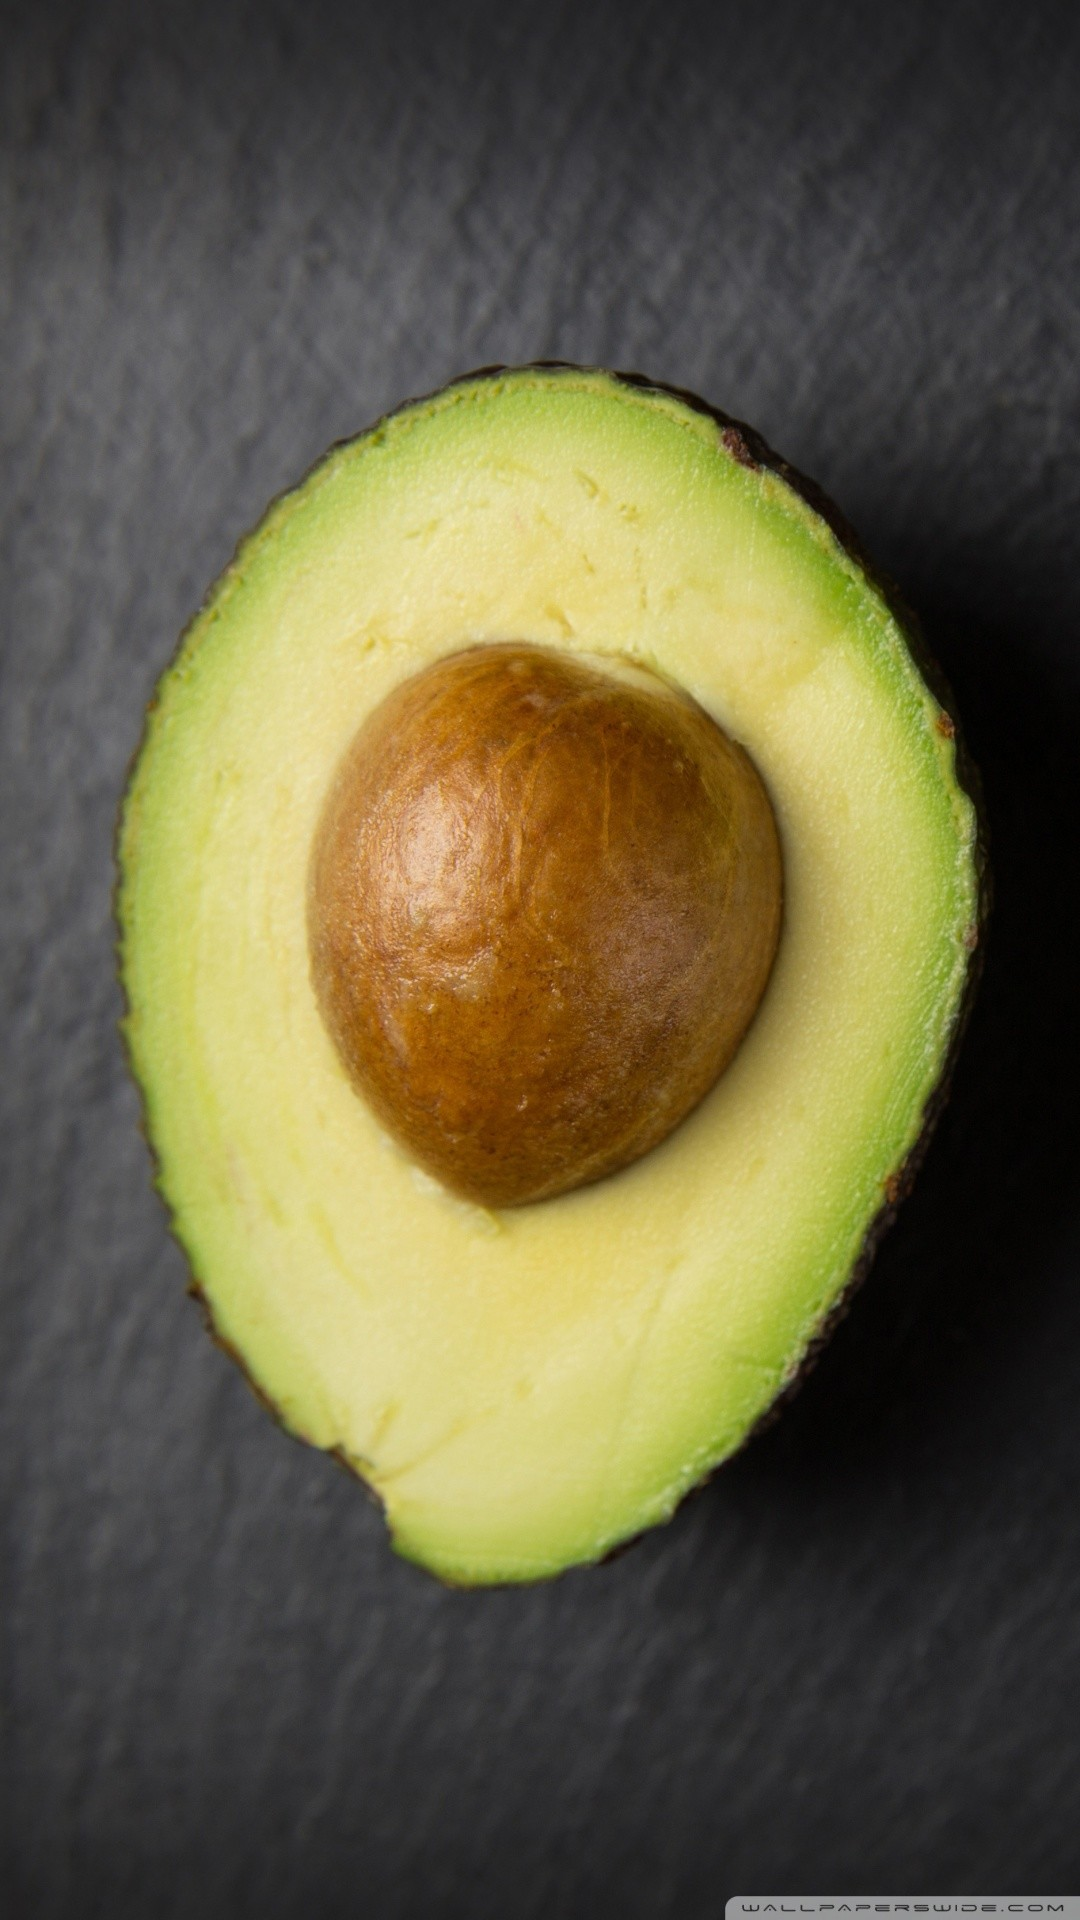 Free Avocado Cut in Half phone wallpaper by roland_chelsea7